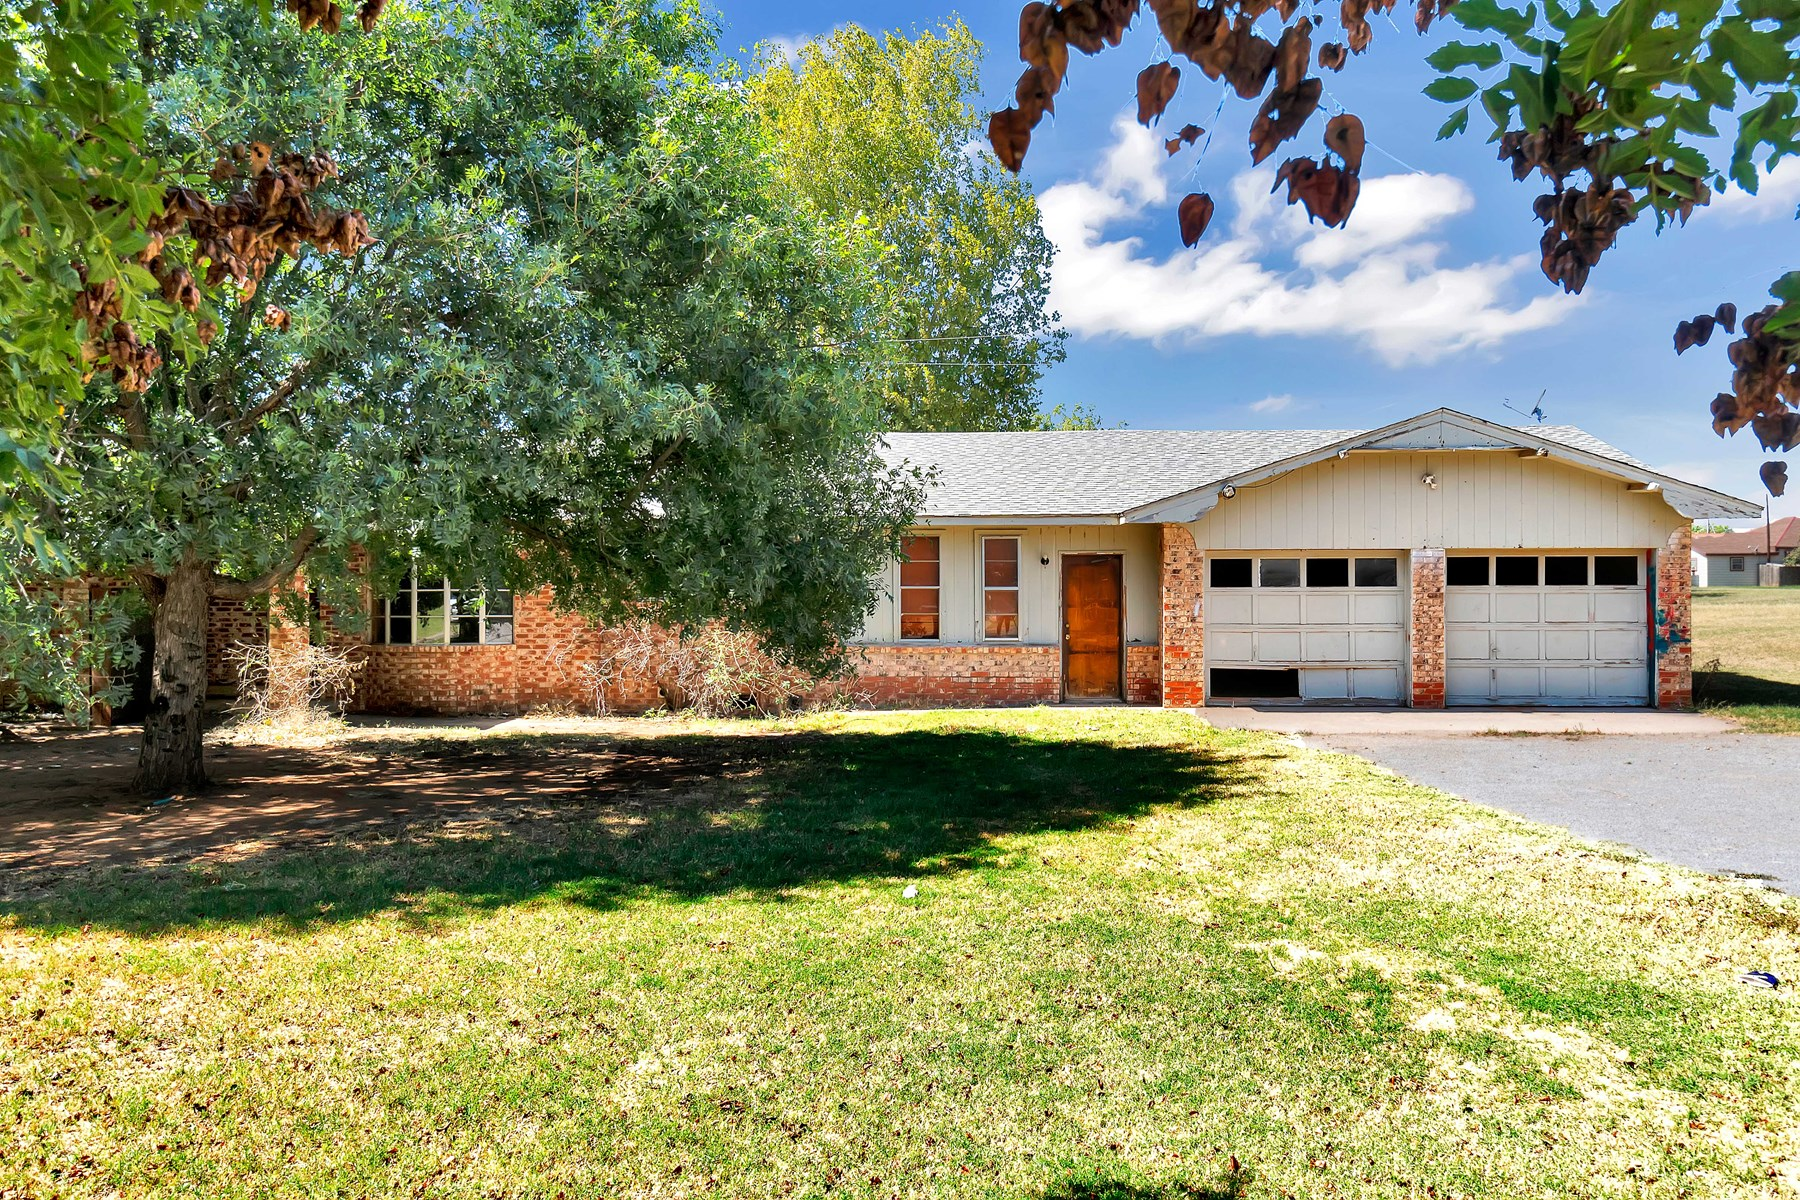 HOME FOR SALE IN CARTER, OKLAHOMA